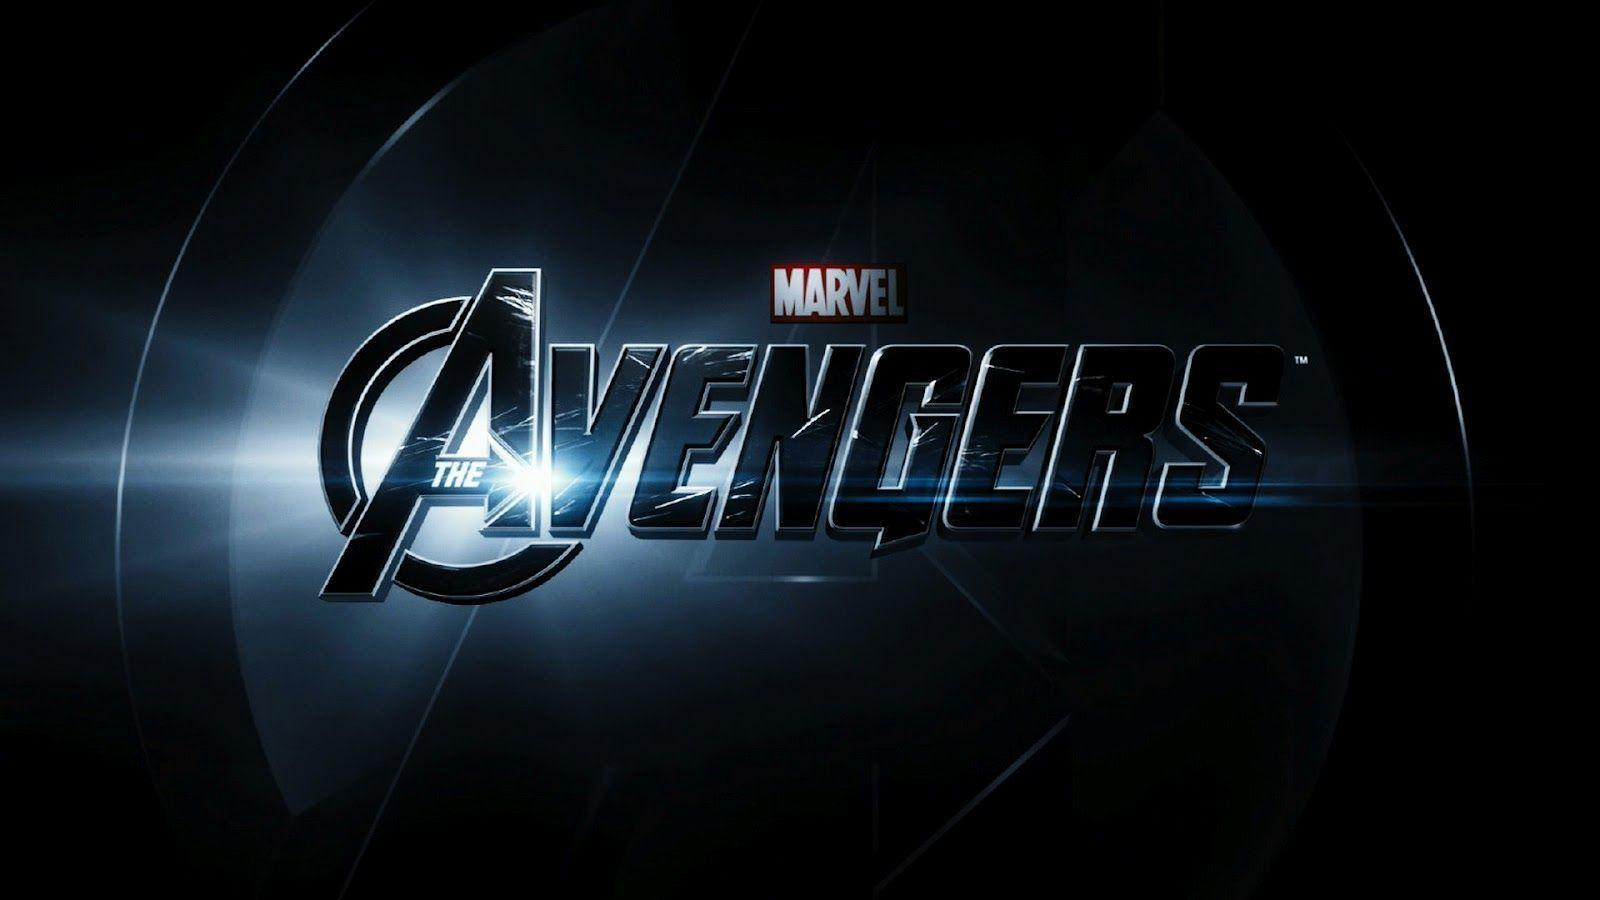 avengers comic logo wallpaper - photo #25